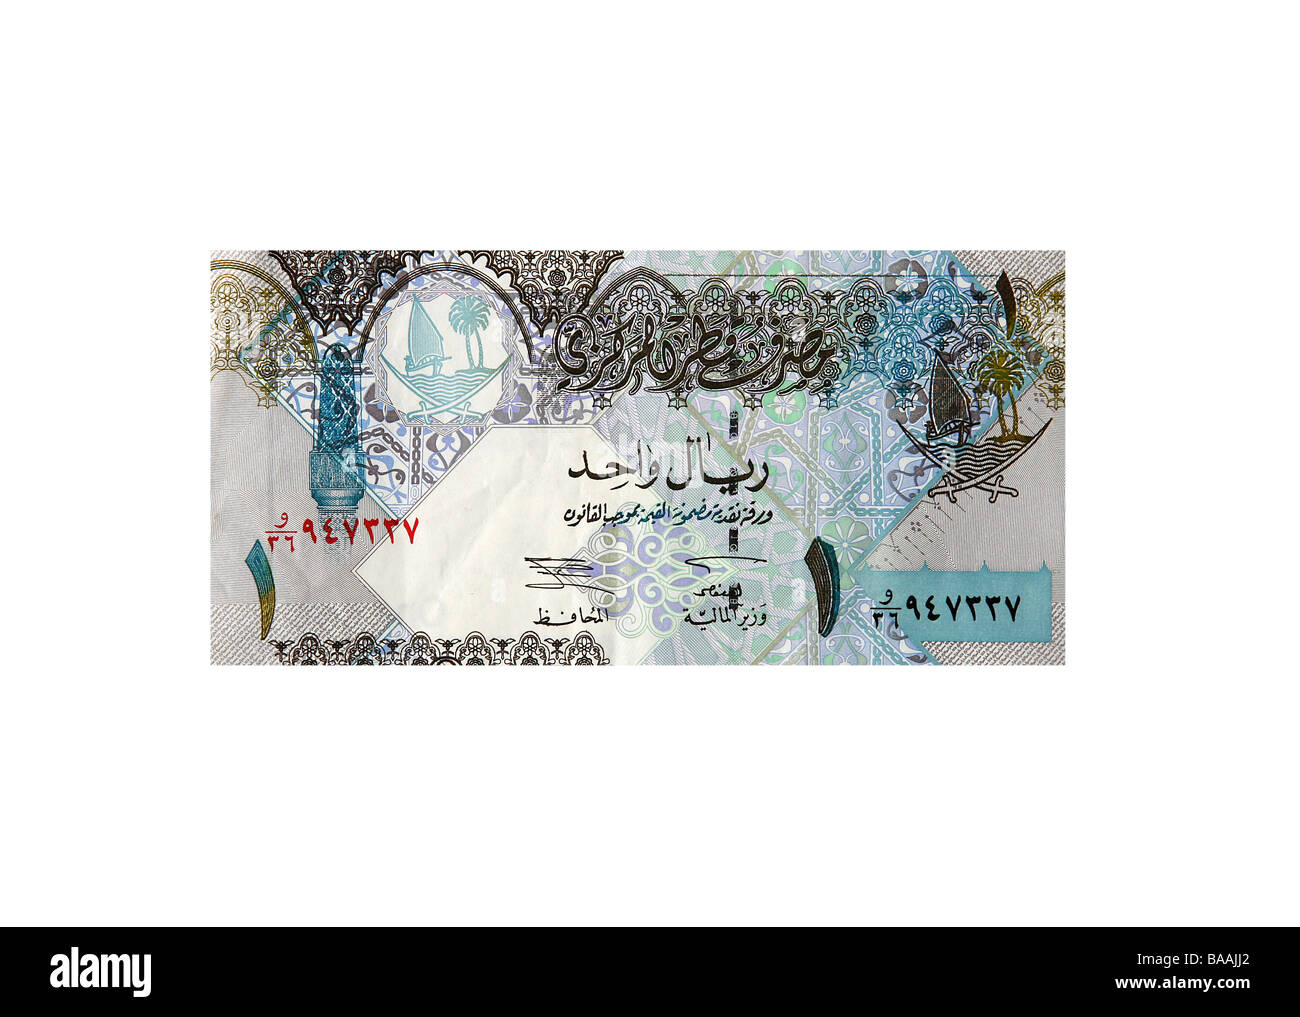 Quatari 1 Rial note cut out on white background - Stock Image